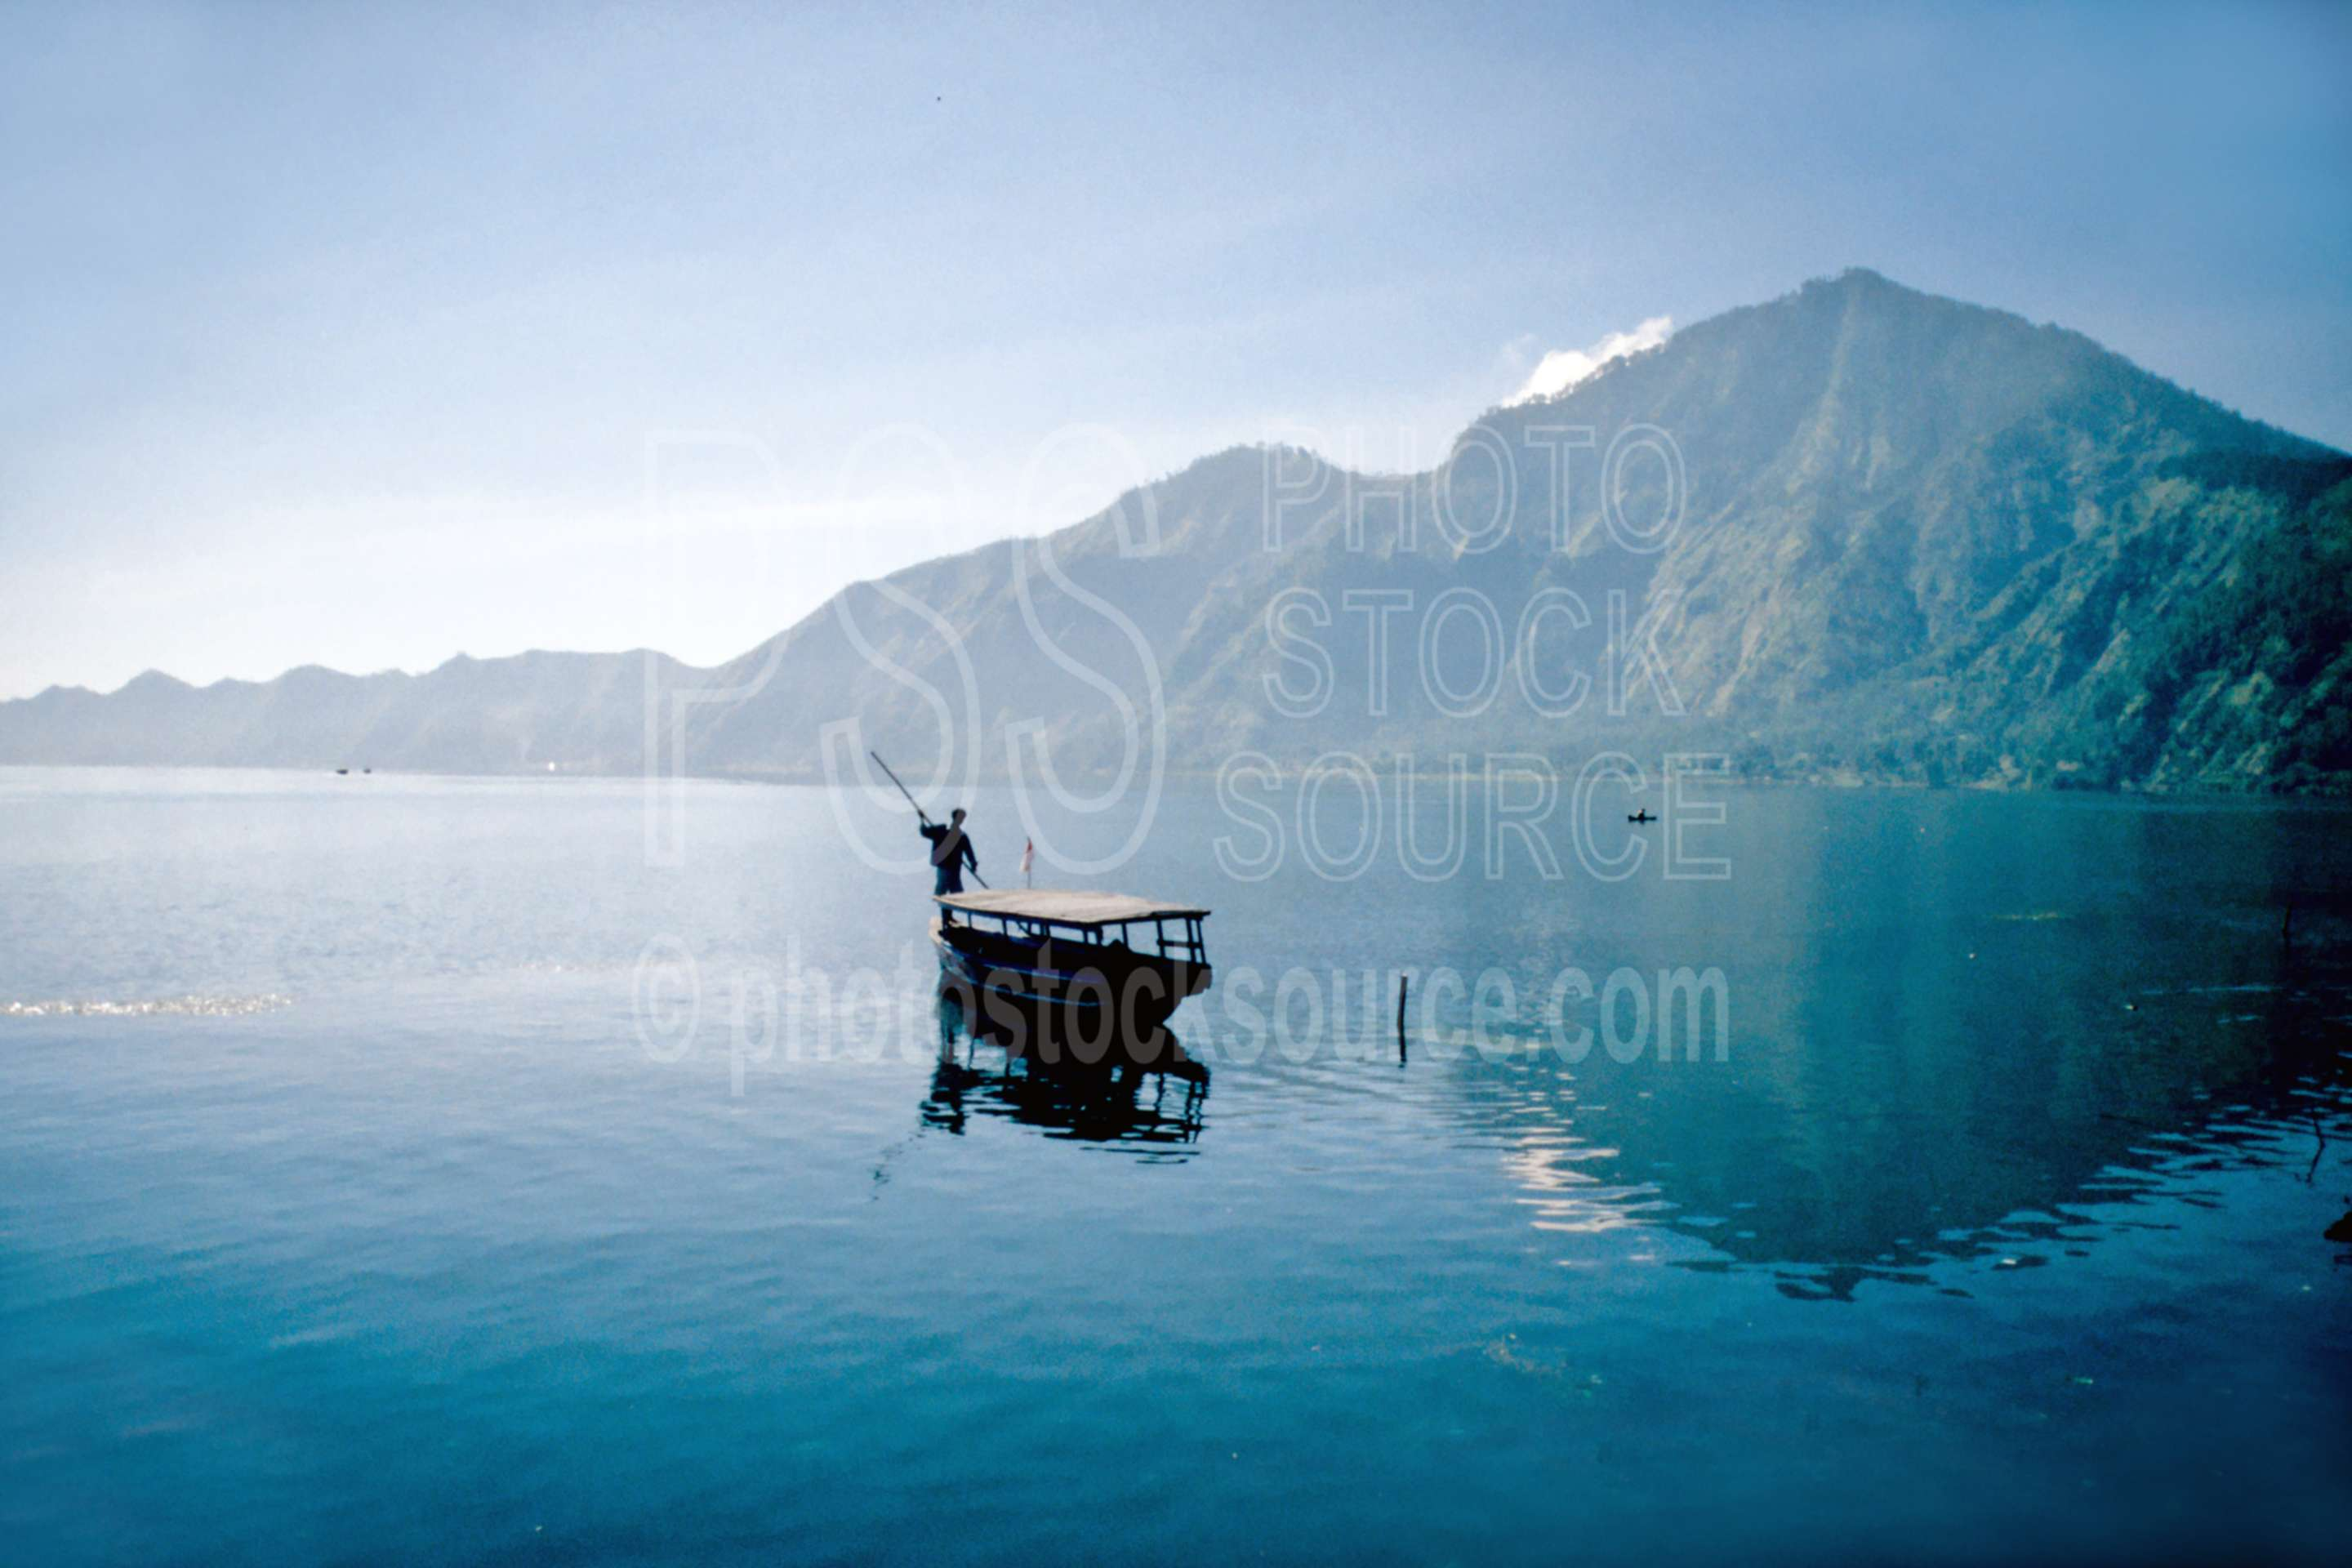 Boat on Lake Batur,caldera,lake,vehicle,lakes rivers,nature,boats